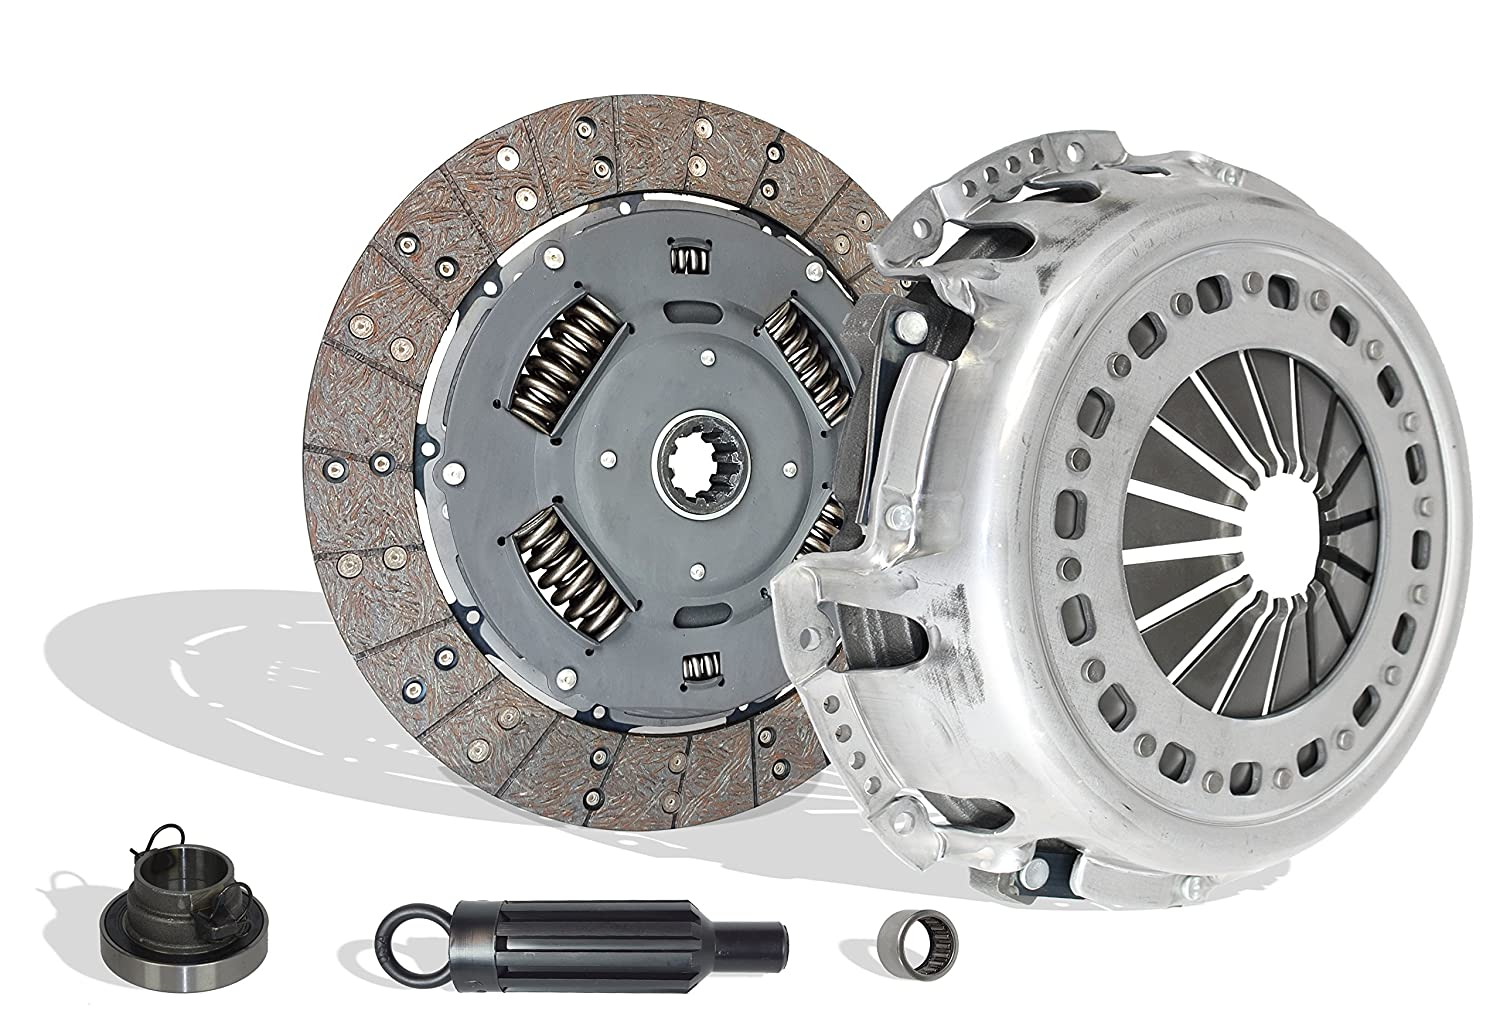 Clutch Kit Works With Dodge RAM 2500 3500 Laramie SLT ST Base 2001-2005 5.9L l6 DIESEL OHV Turbocharged (Stage 3; FITS UP TO JANUARY 24, 2005; CUMMINS TURBO DIESEL;6 SPEED TRANSMISSION ONLY) Southeast Clutch 05-101FW